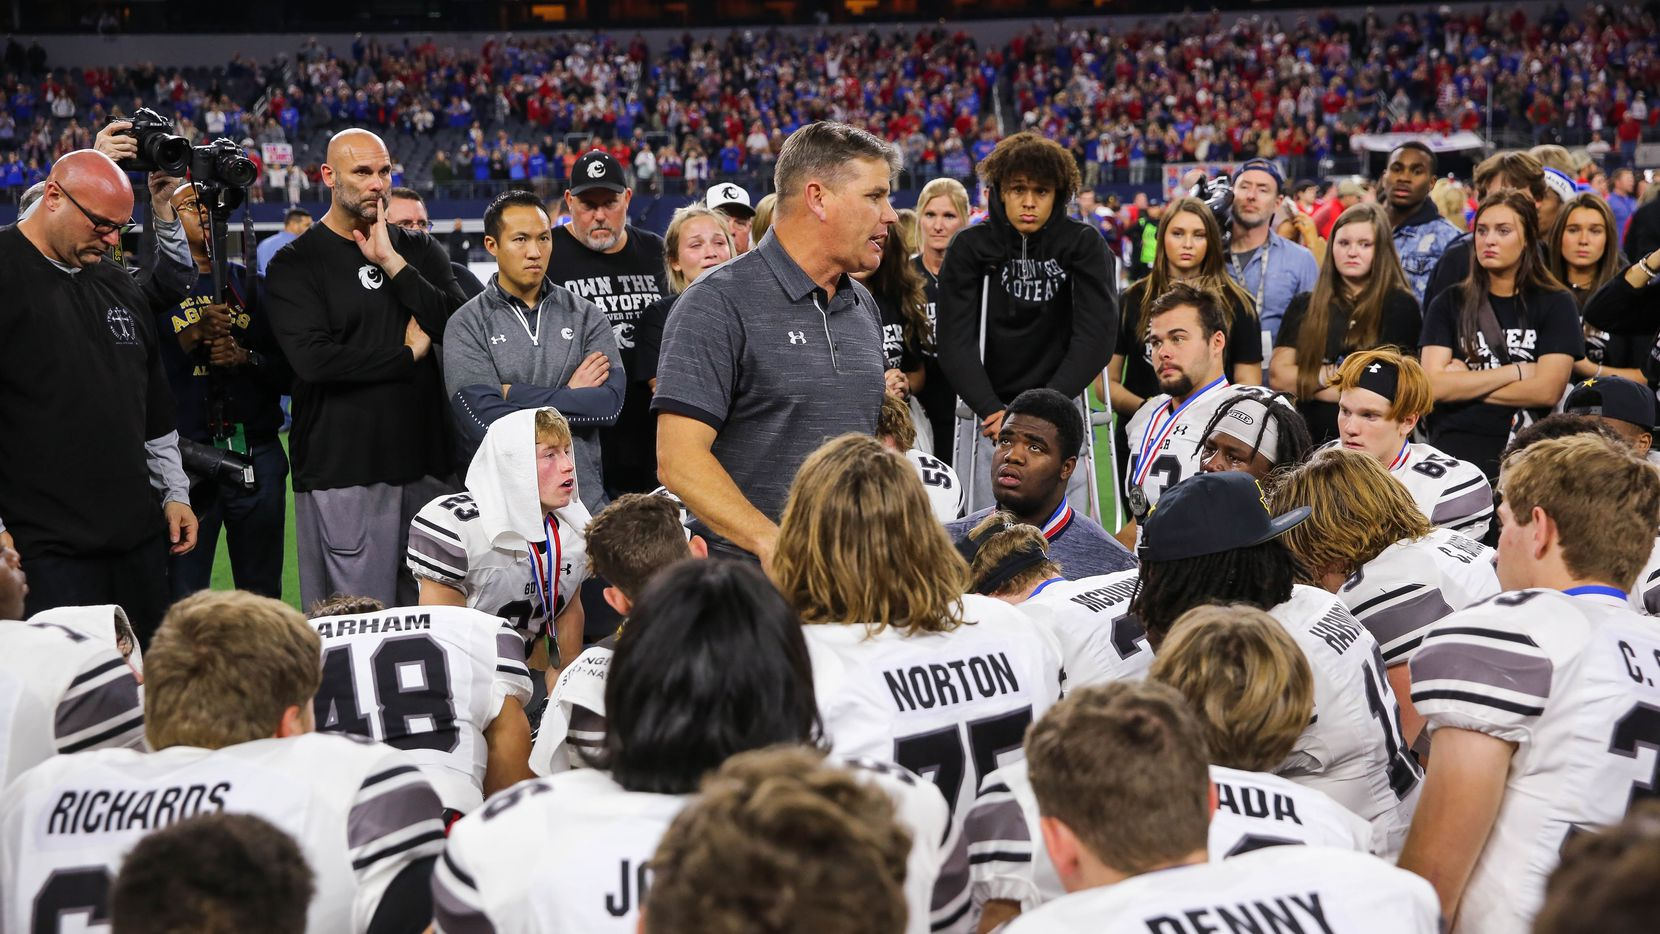 Denton Guyer's coach John Walsh talks to his team after losing a Class 6A Division II state championship game against Austin Westlake at the AT&T Stadium in Arlington, on Saturday, December 21, 2019. Westlake won the game 24-0. (Juan Figueroa/The Dallas Morning News)